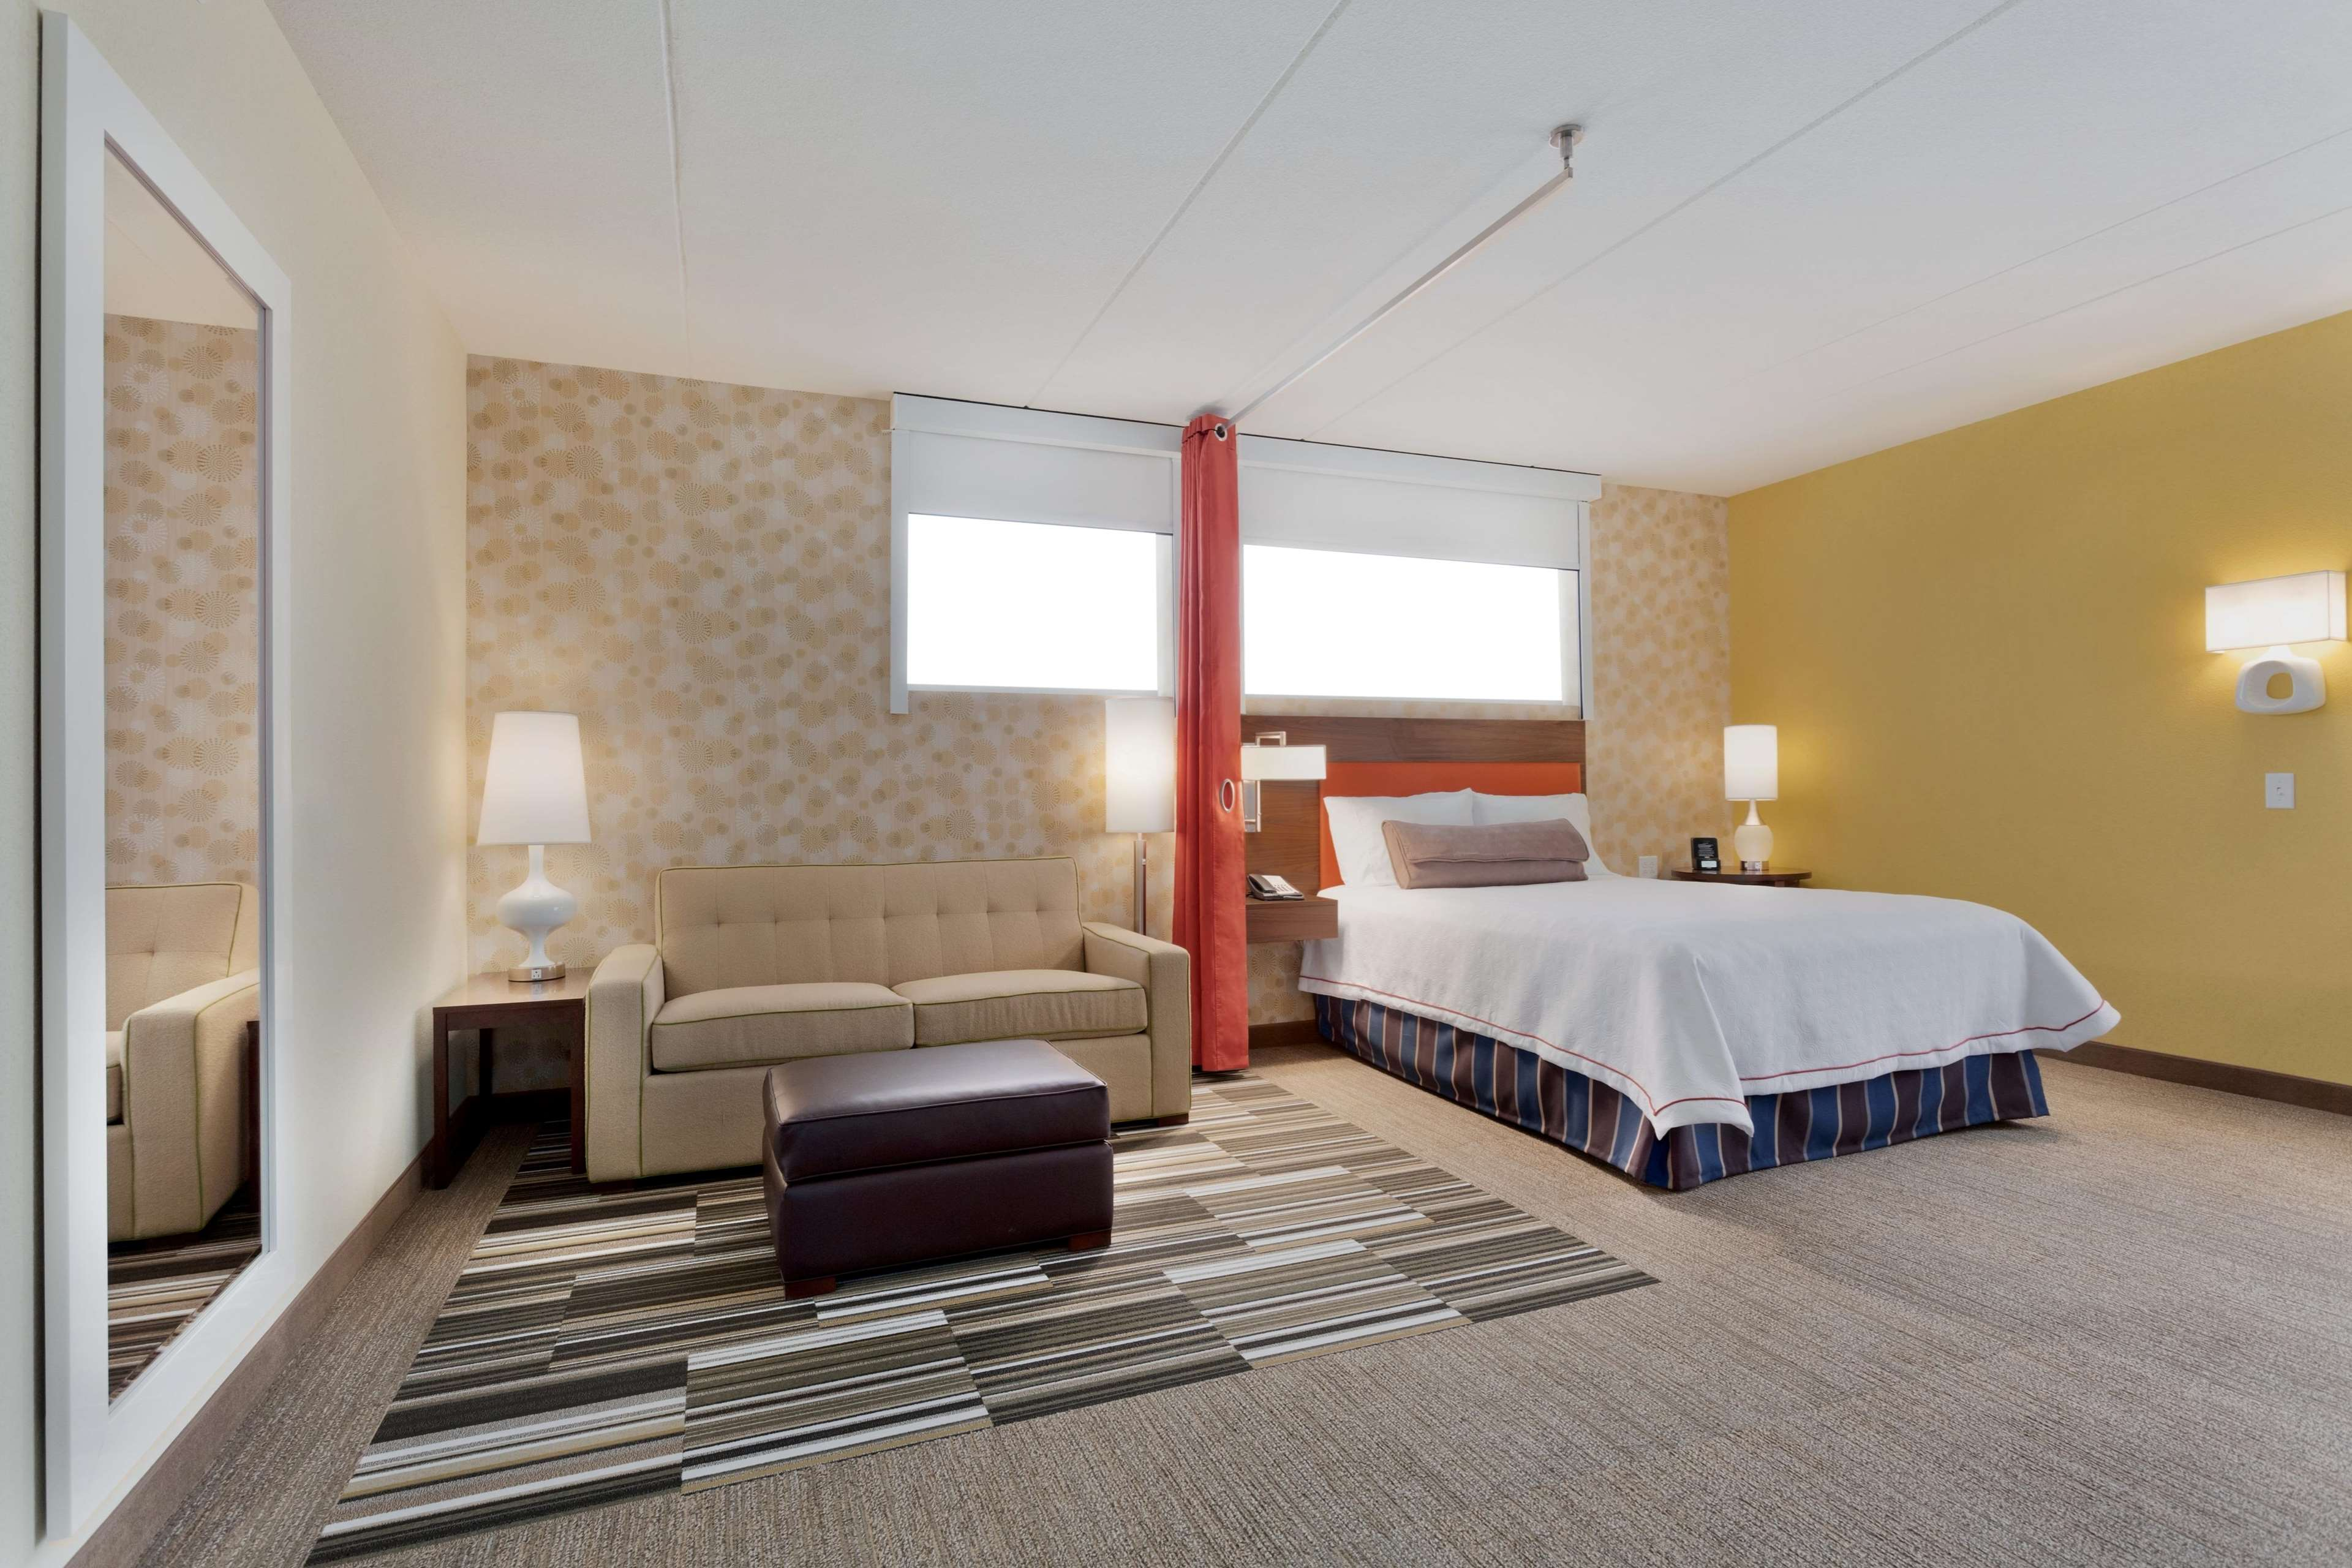 Home2 Suites by Hilton Baltimore / Aberdeen, MD image 11